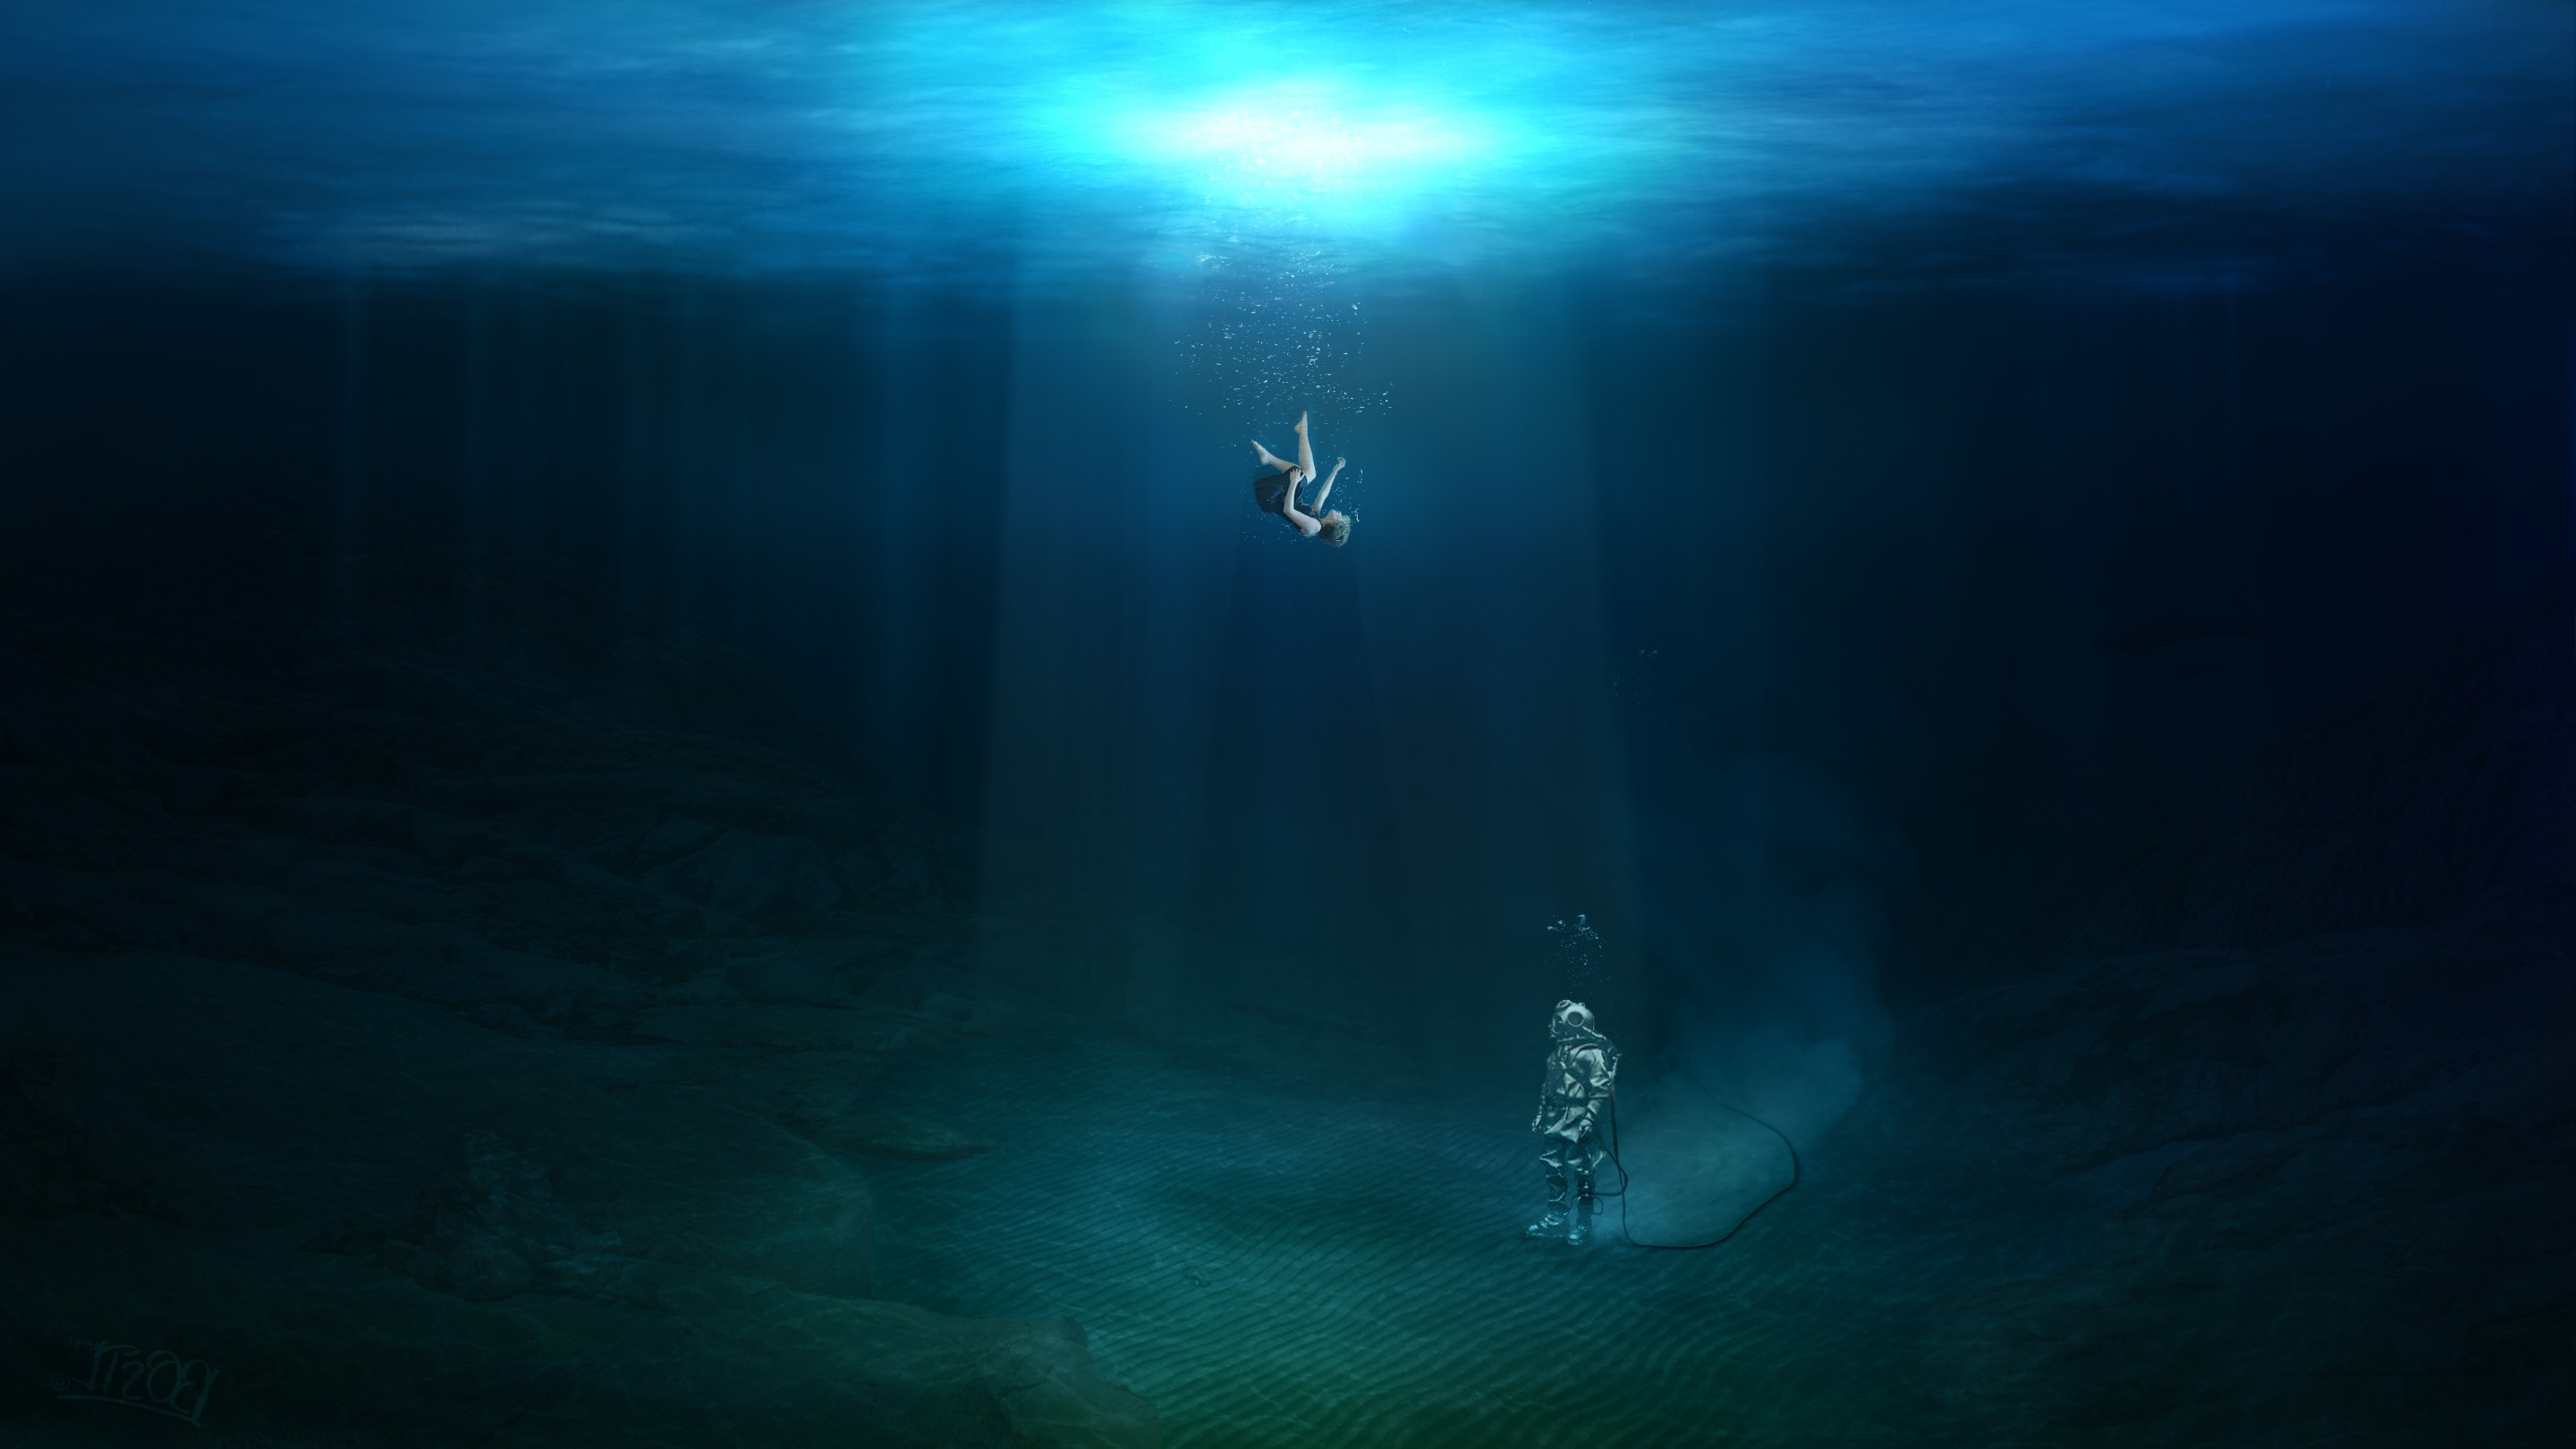 Naruto Girl Wallpaper Hd Fantasy Art Underwater Original Characters Falling